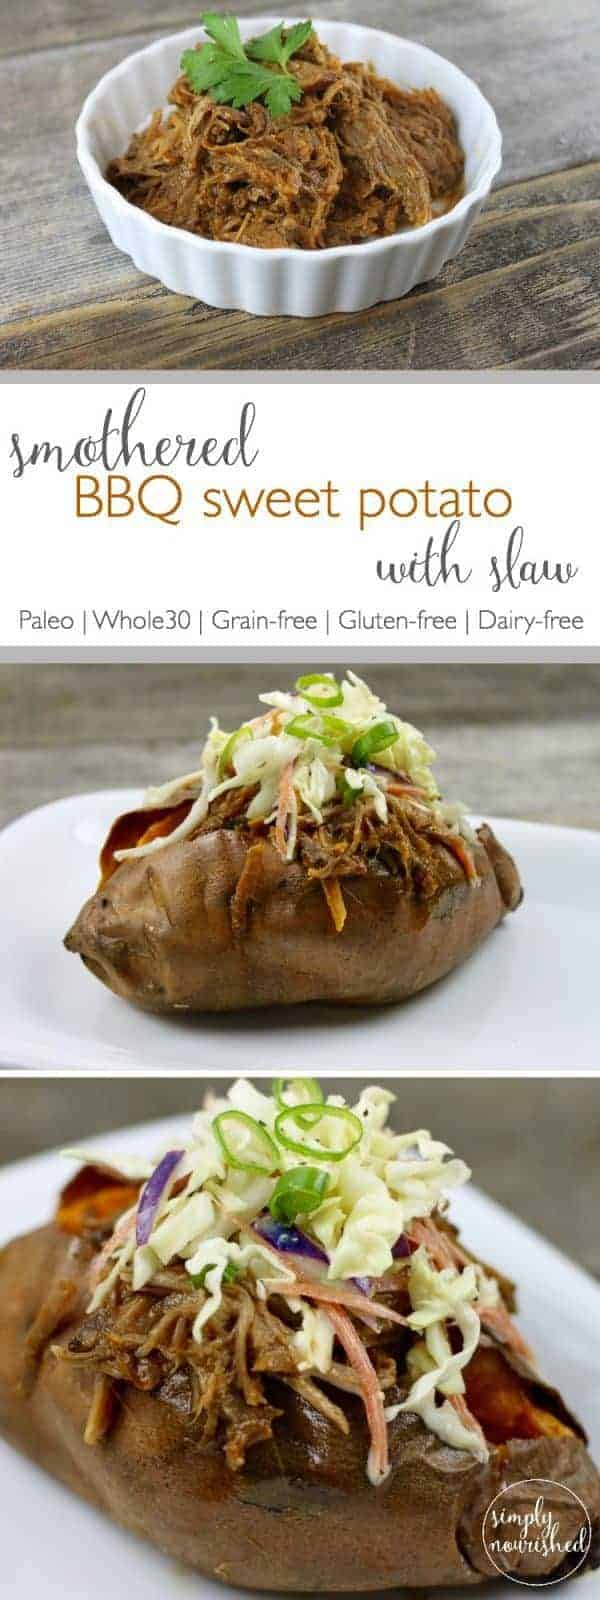 BBQ Sweet Potato with Slaw   Everything you need is right here in one dish! This baked sweet potato topped with tangy BBQ beef and creamy, crunchy coleslaw is easy to pull together with a little advance prep so you can get dinner on the table fast   https://therealfoodrds.com/smothered-bbq-sweet-potato-with-slaw-recipe/